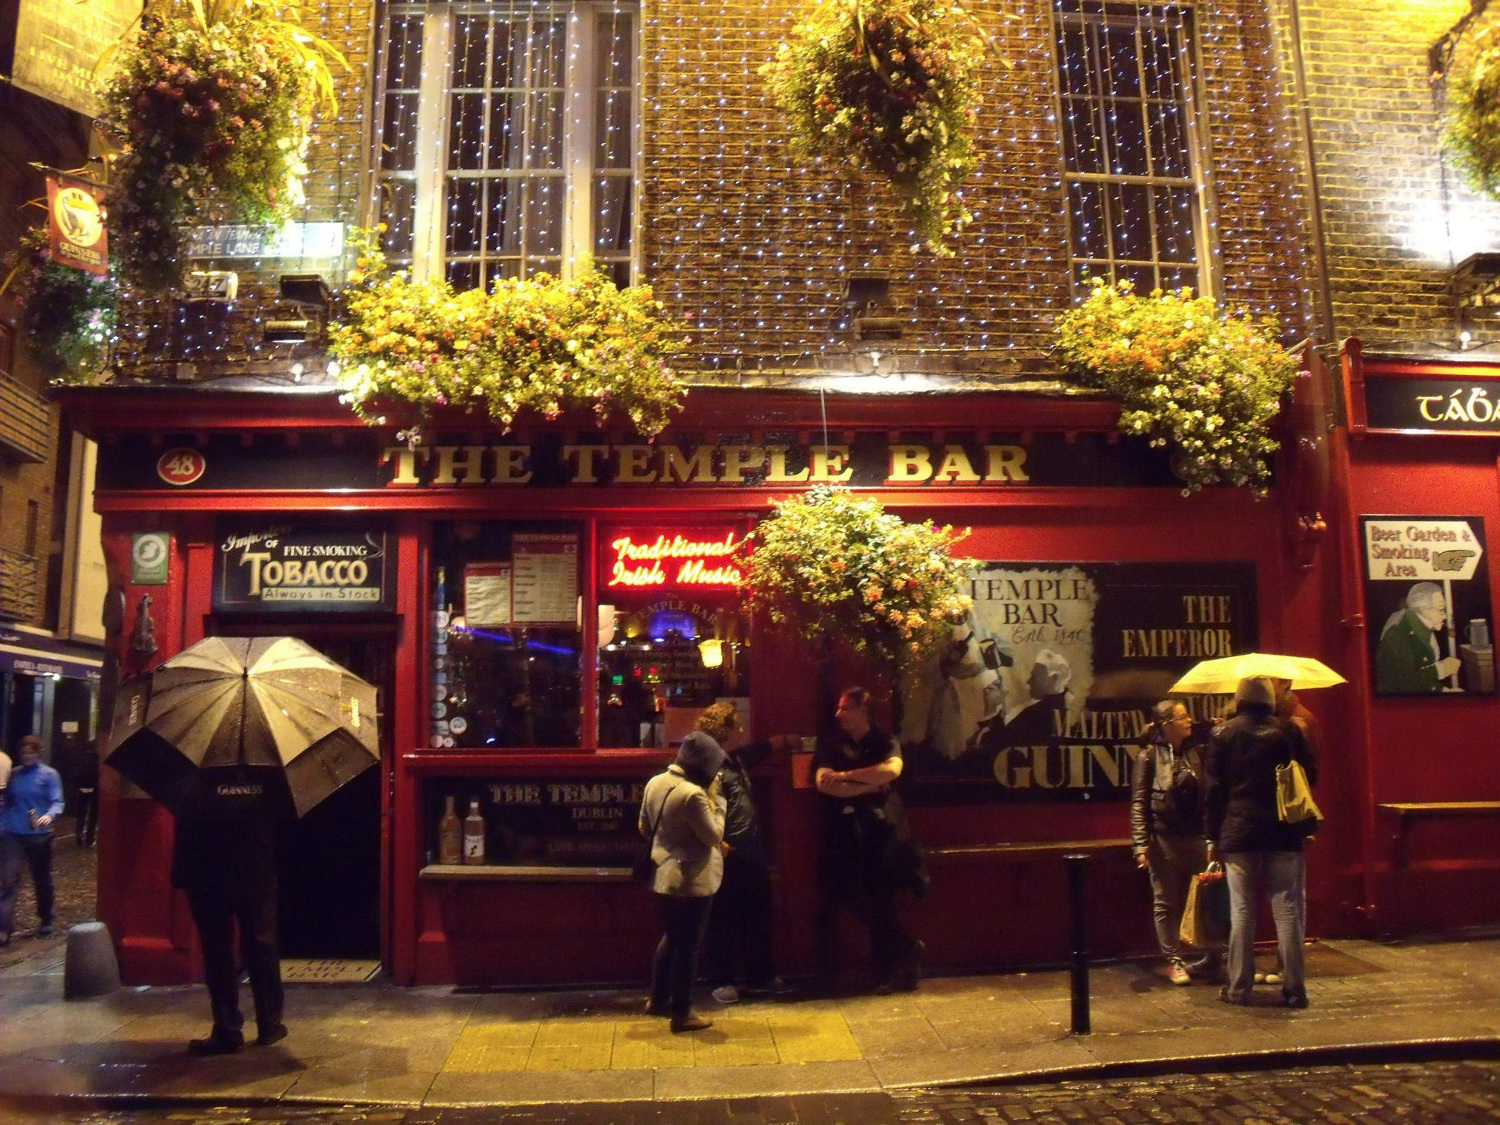 Temple Bar - A local's guide to Dublin, Ireland